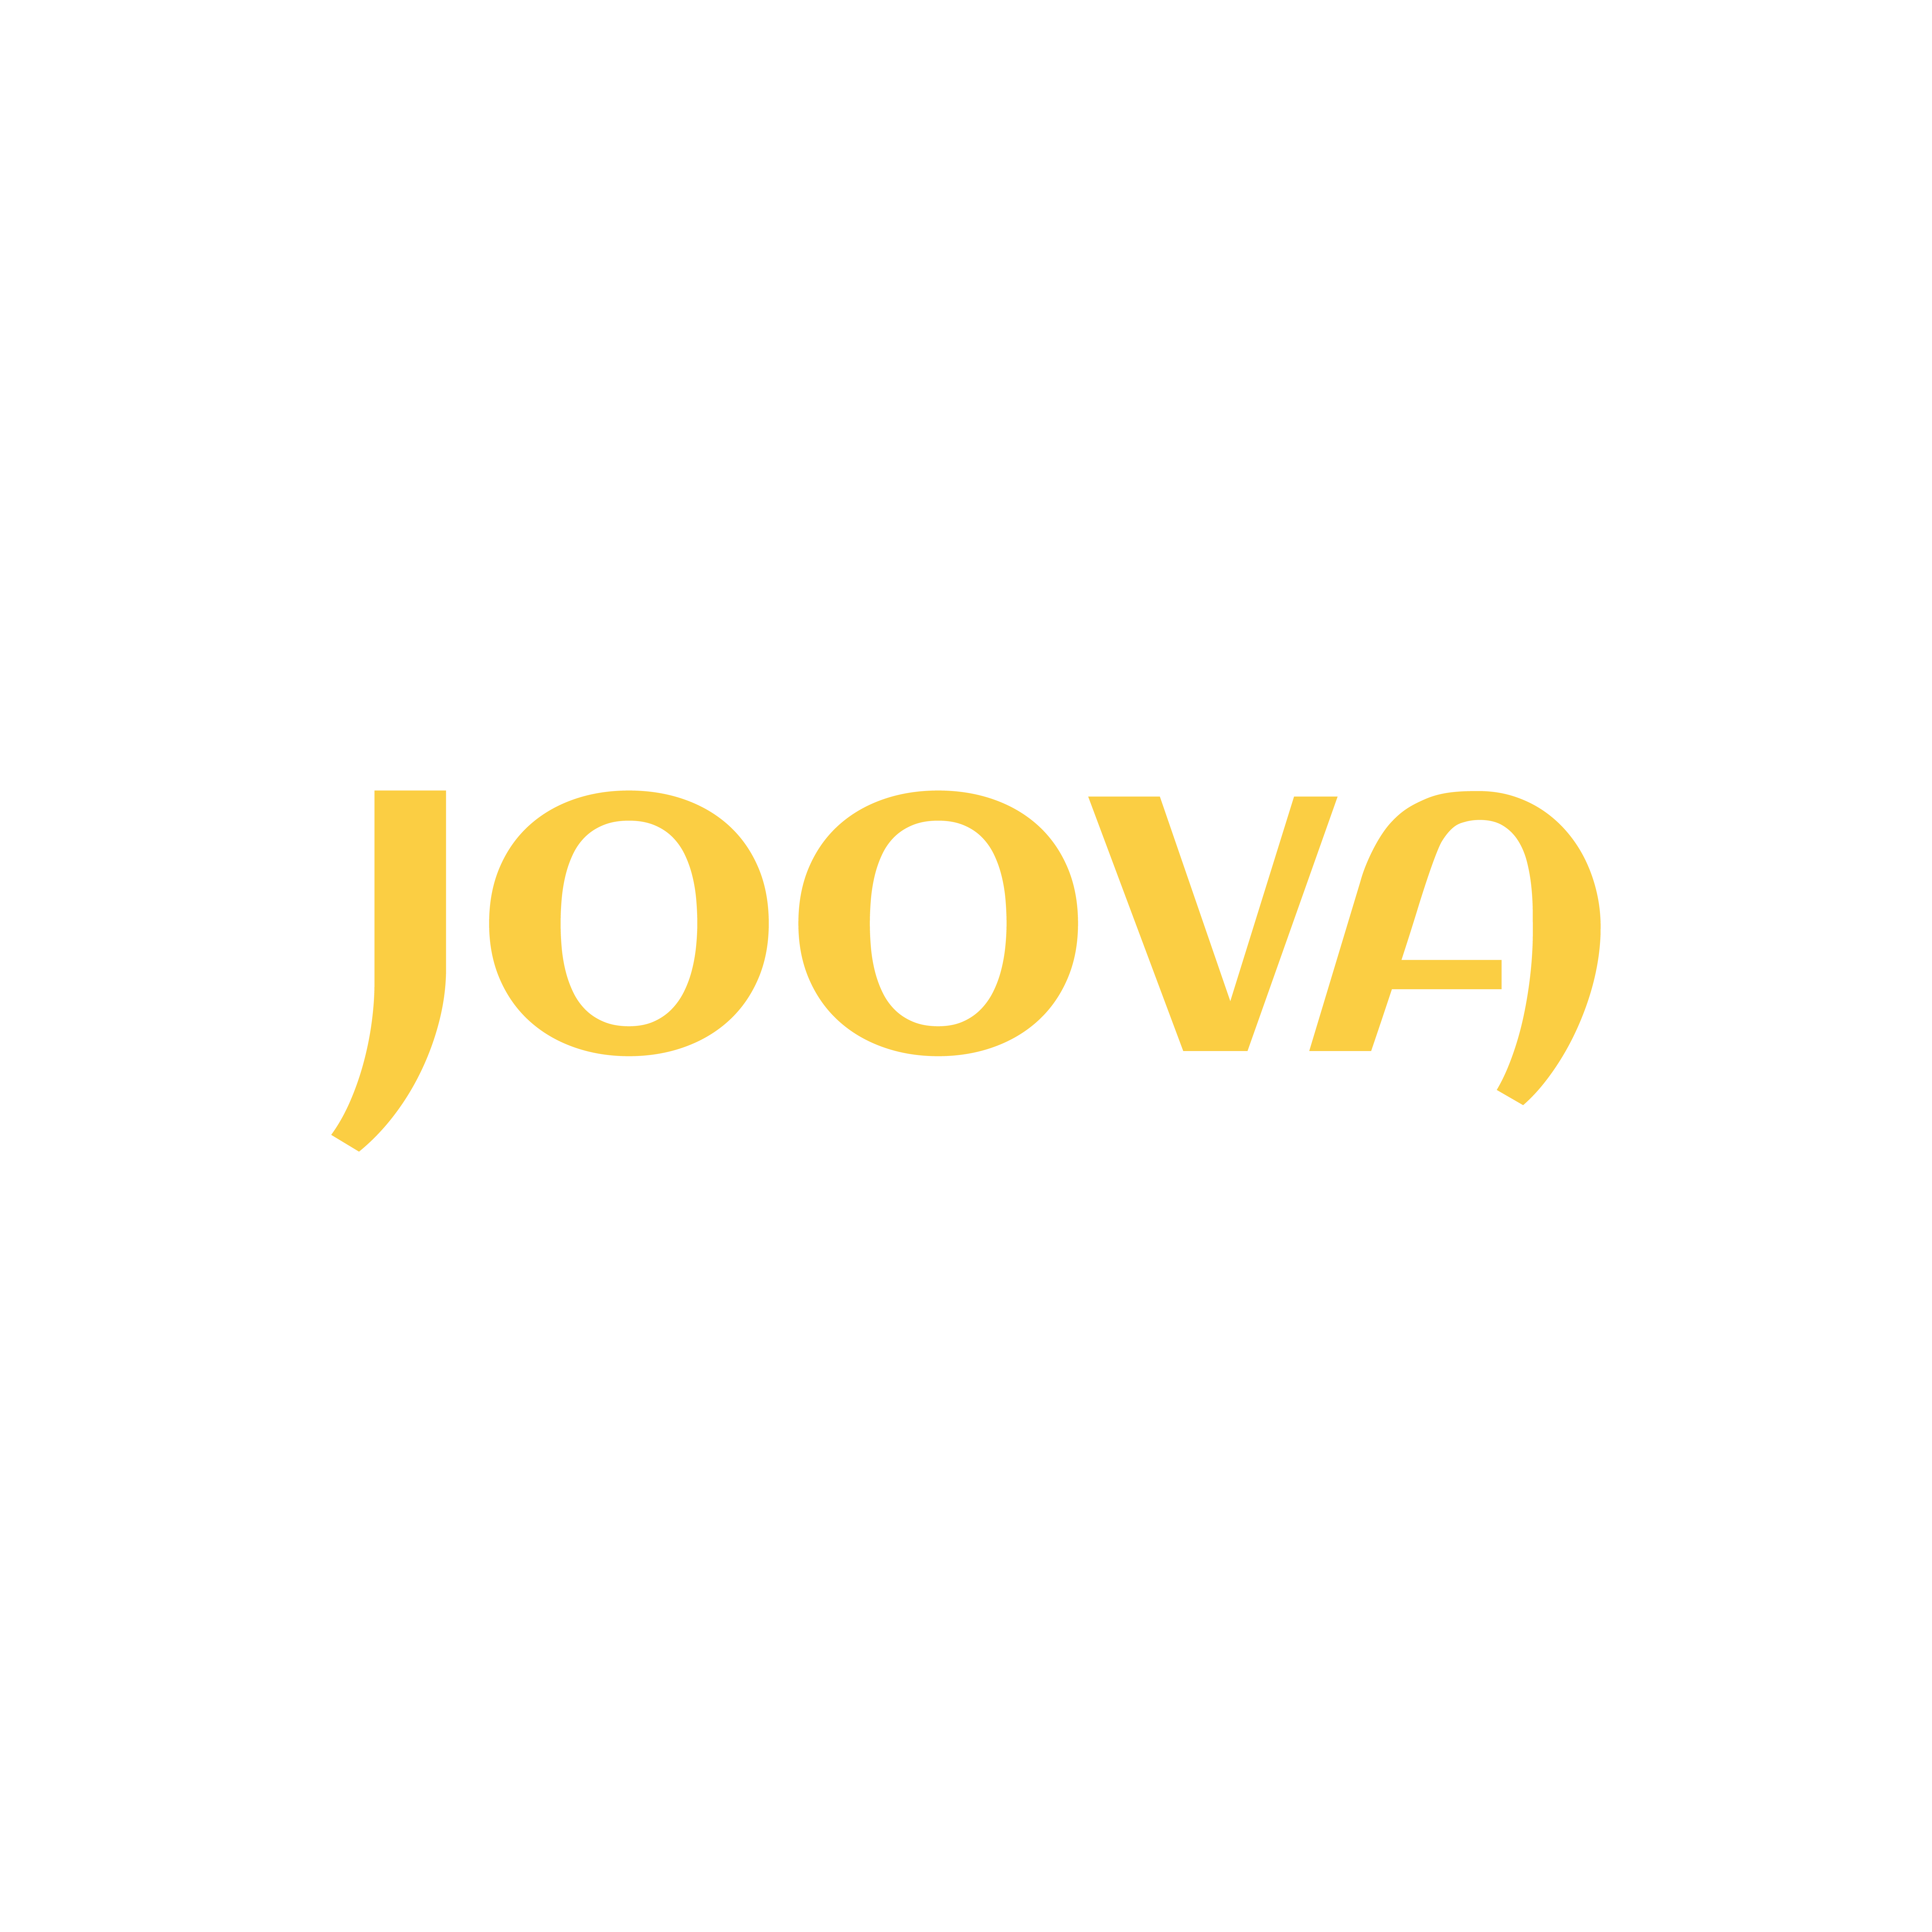 Juva or Joova